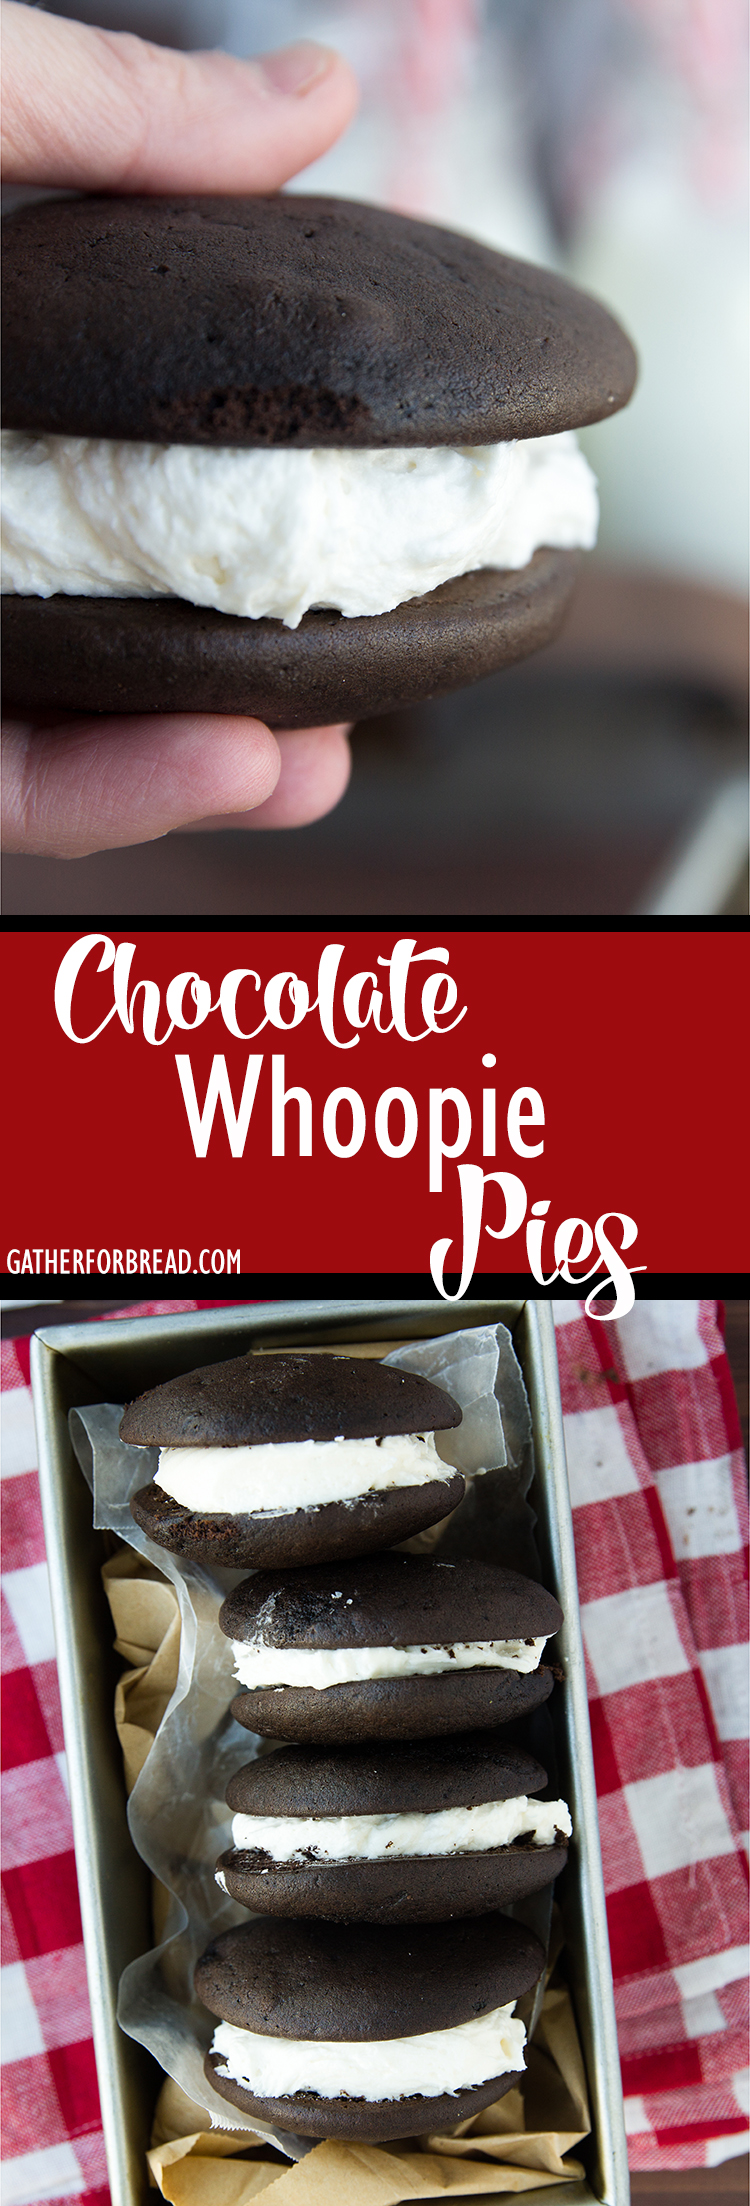 Chocolate Whoopie Pies - Moist chocolate whoopie pies made REAL butter, NO vegetable shortening. These are INCREDIBLE!!!